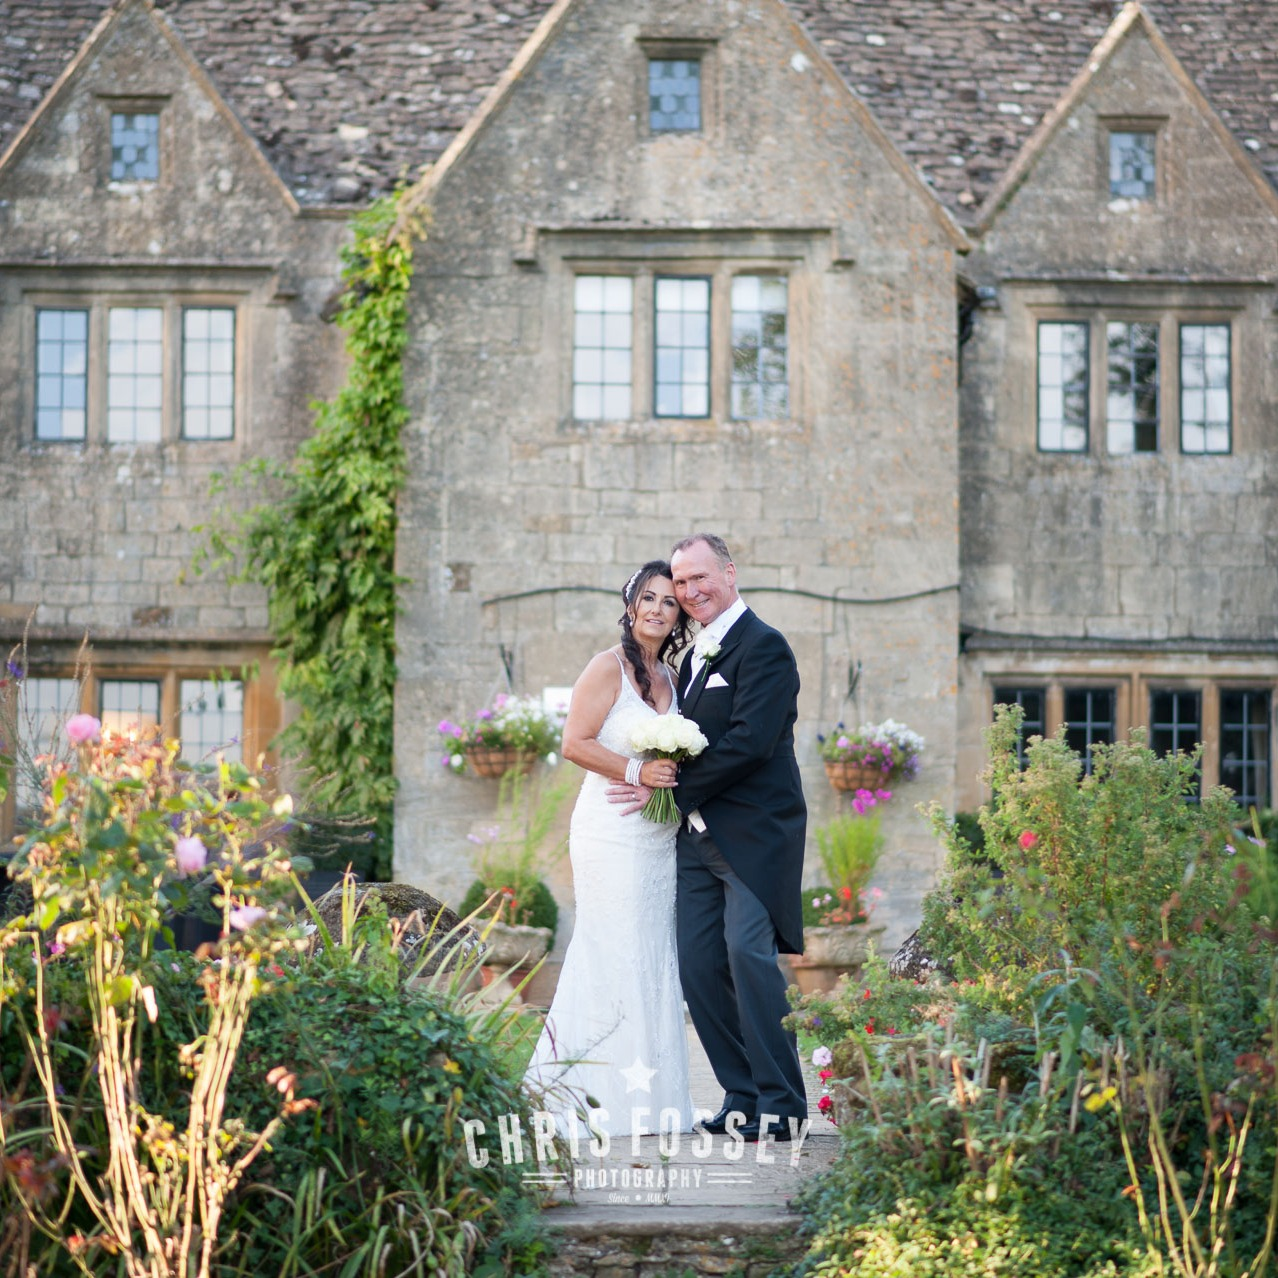 Warwickshire Wedding Photography Portfolio-Charingworth Manor Wedding Photographer Chris Fossey Photography-52